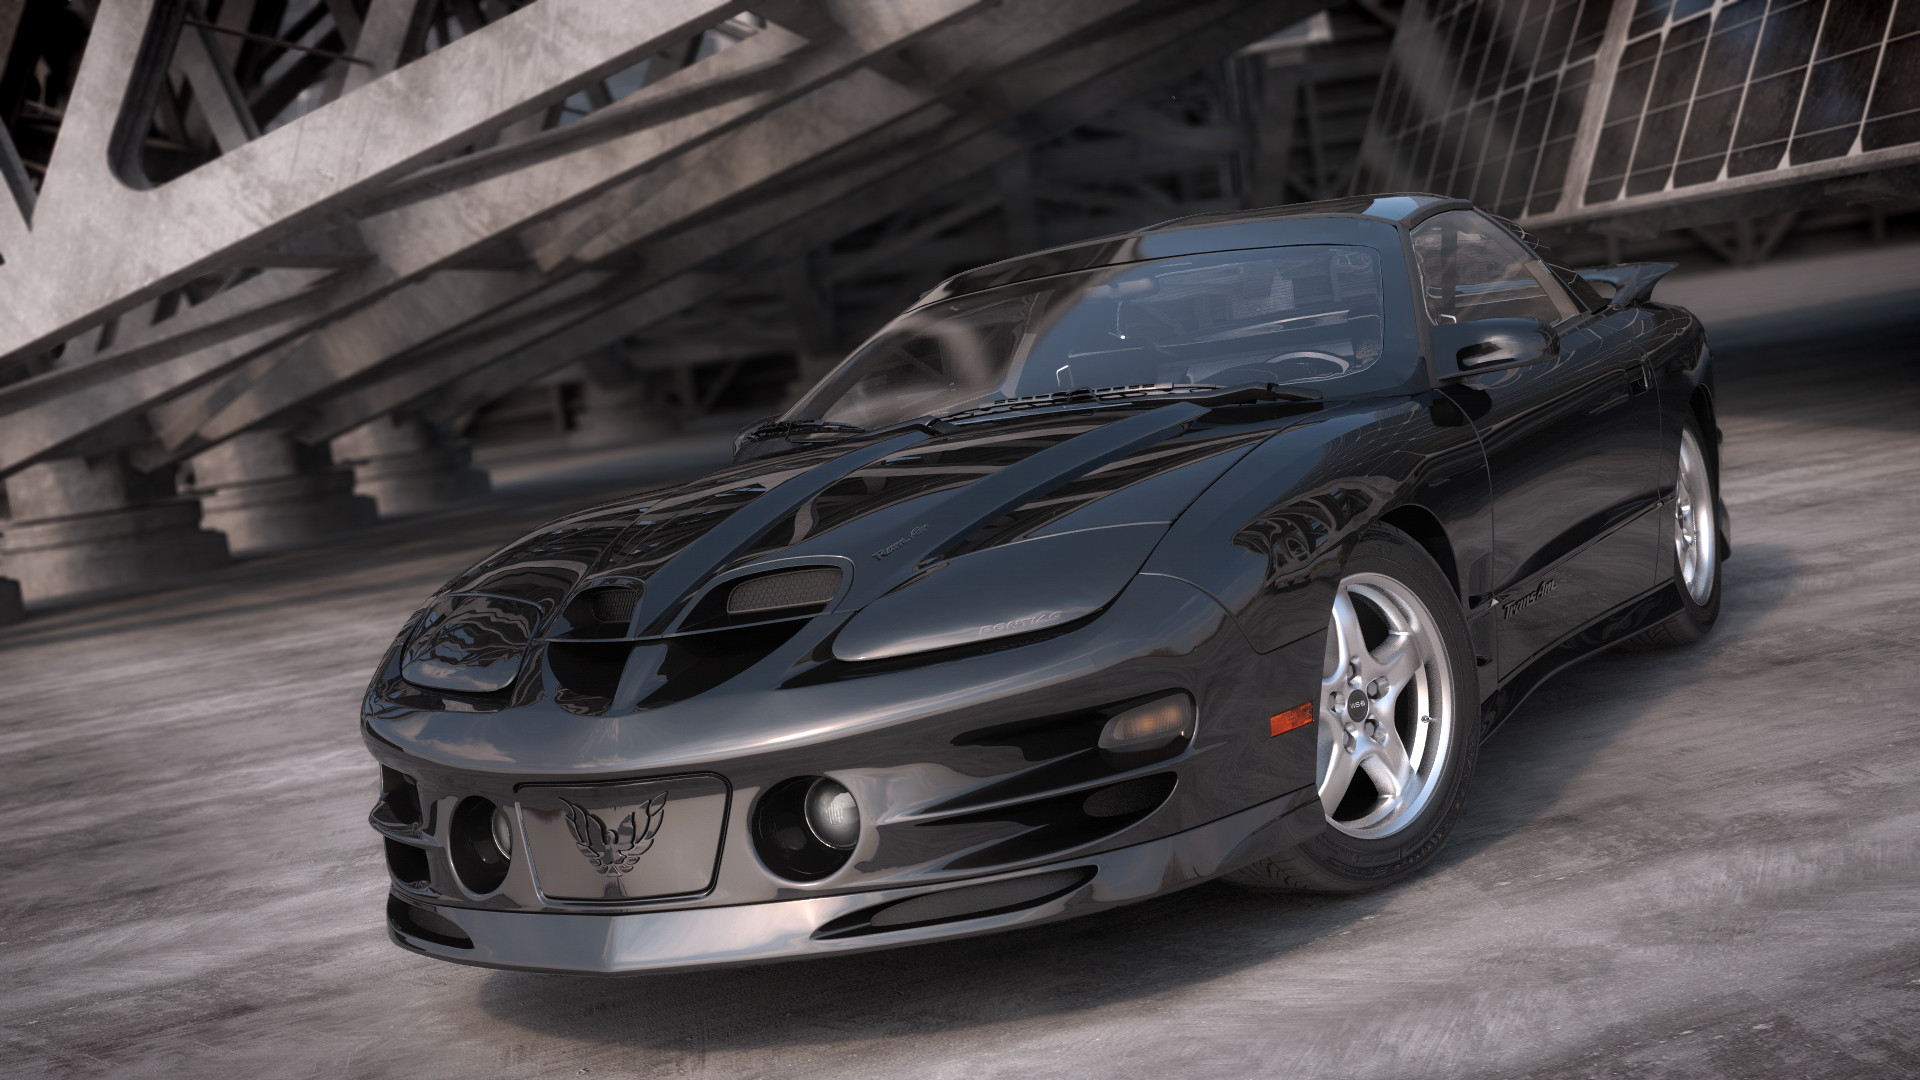 Ws6 trans am wallpaper